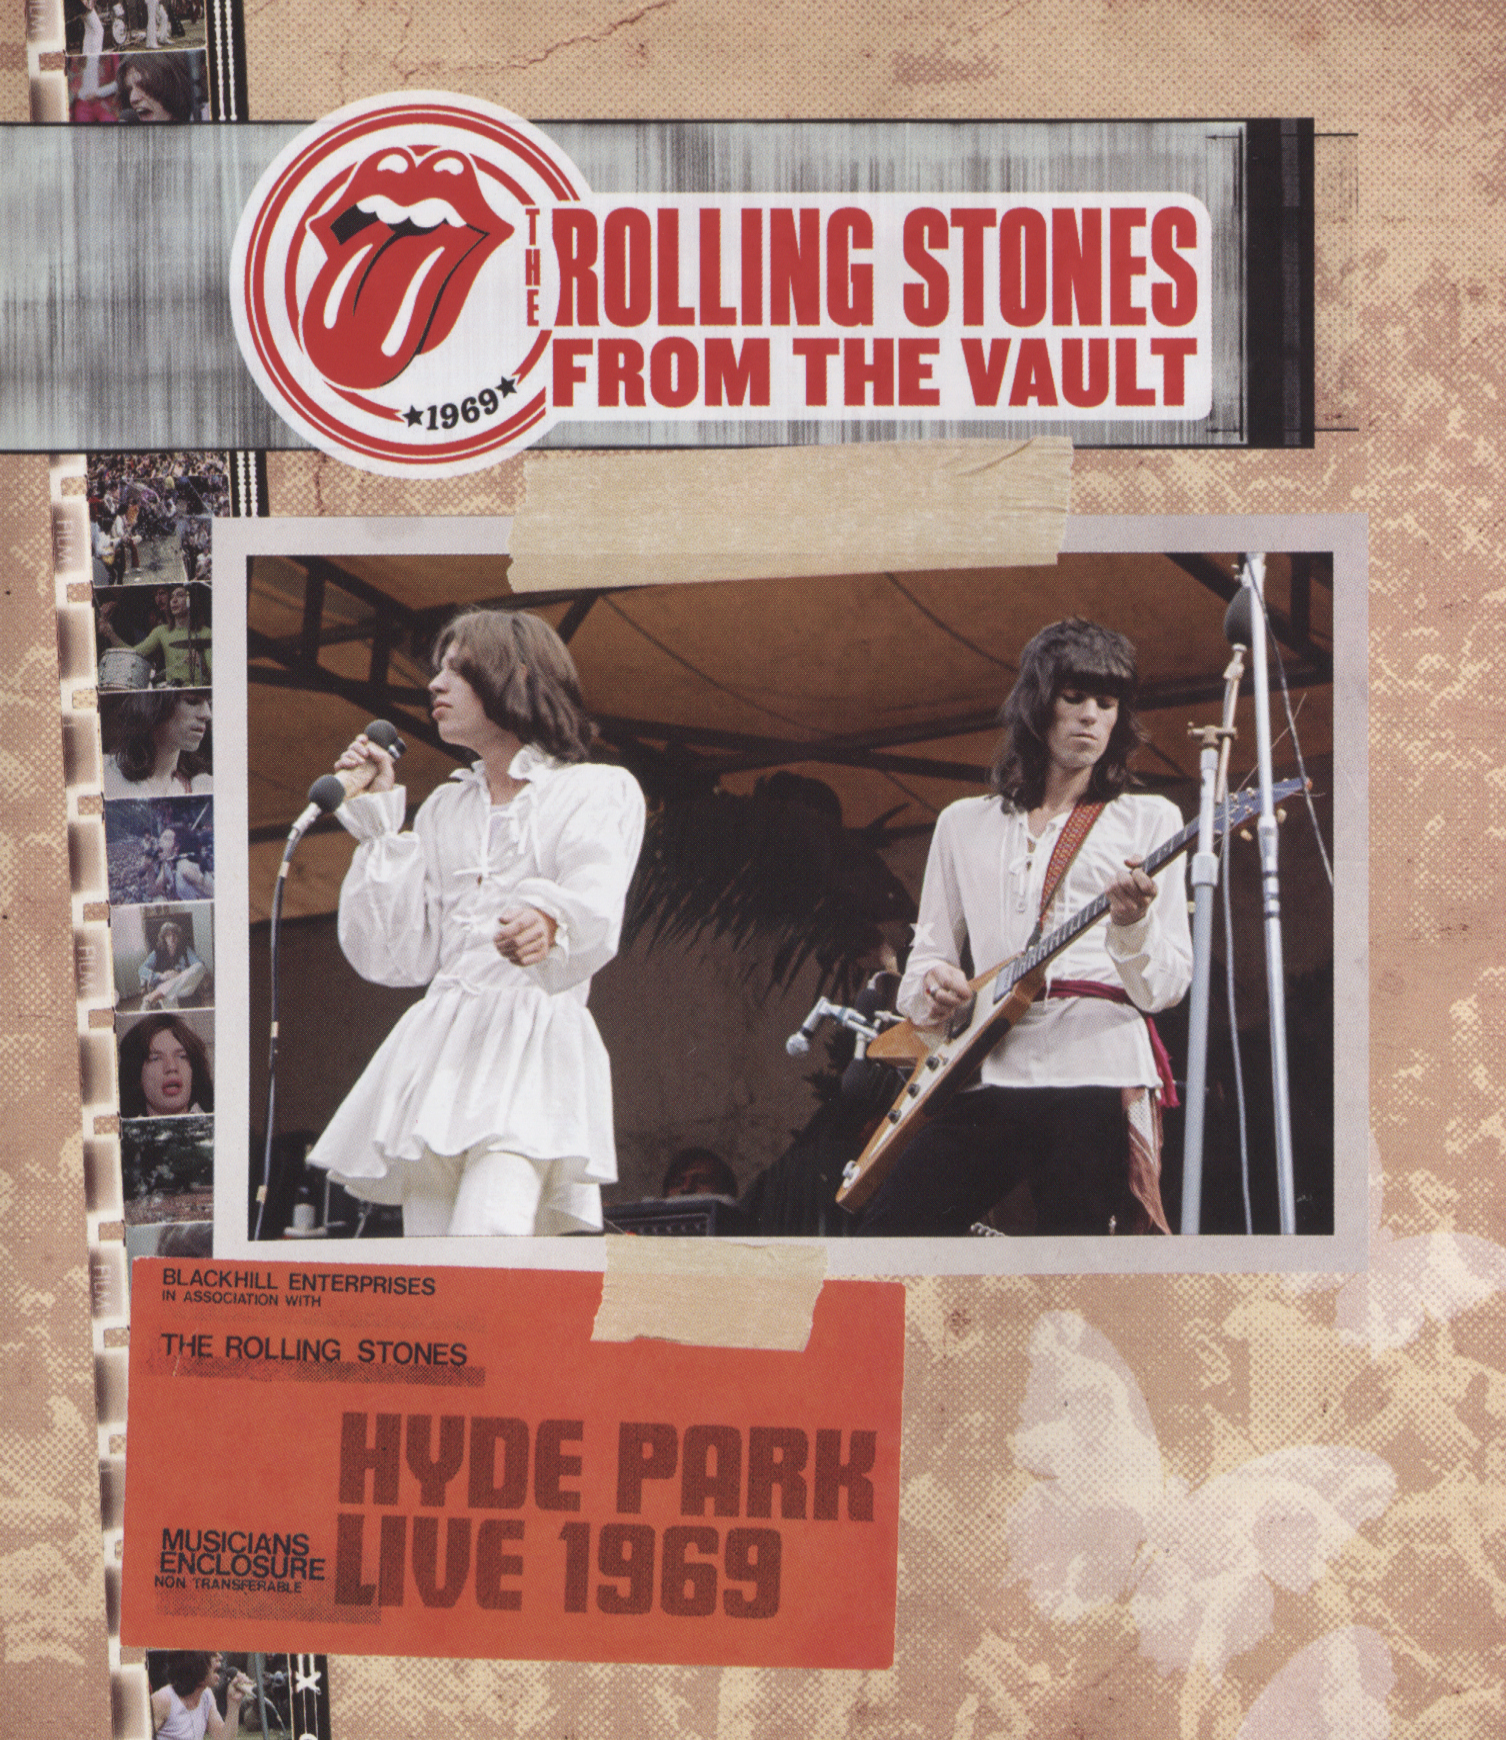 The Rolling Stones: From the Vault - Hyde Park - Live 1969